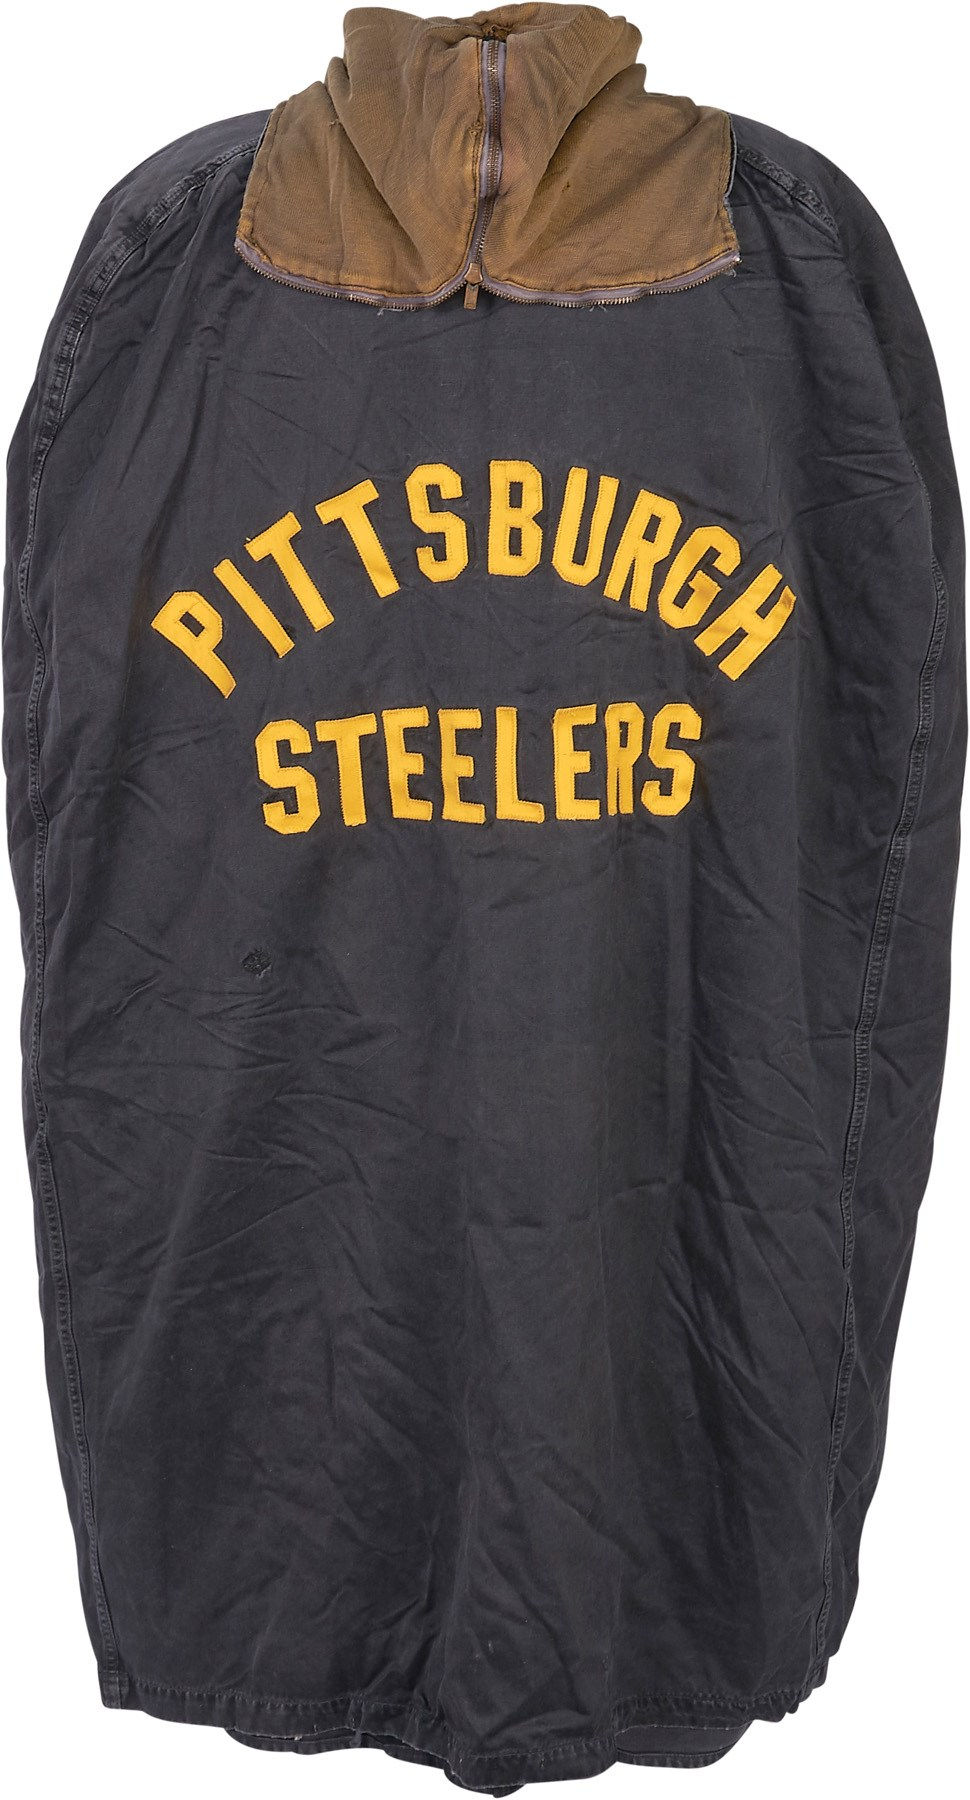 28a05c4779e Vintage Pittsburgh Steelers Game Worn Sideline Cape